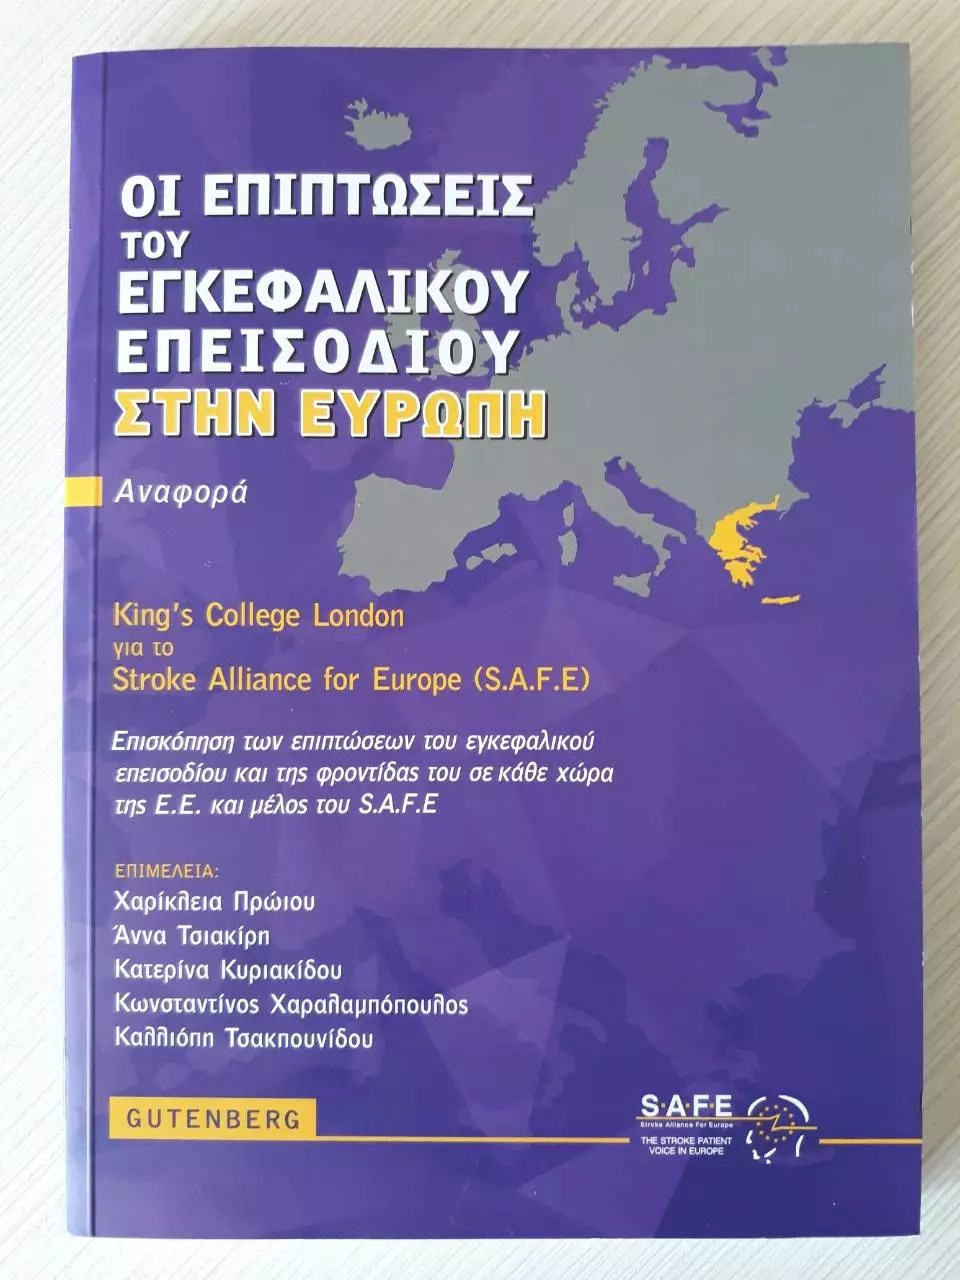 Greek Language The Burden Of Stroke In Europe Report Now In Greek Language Safe